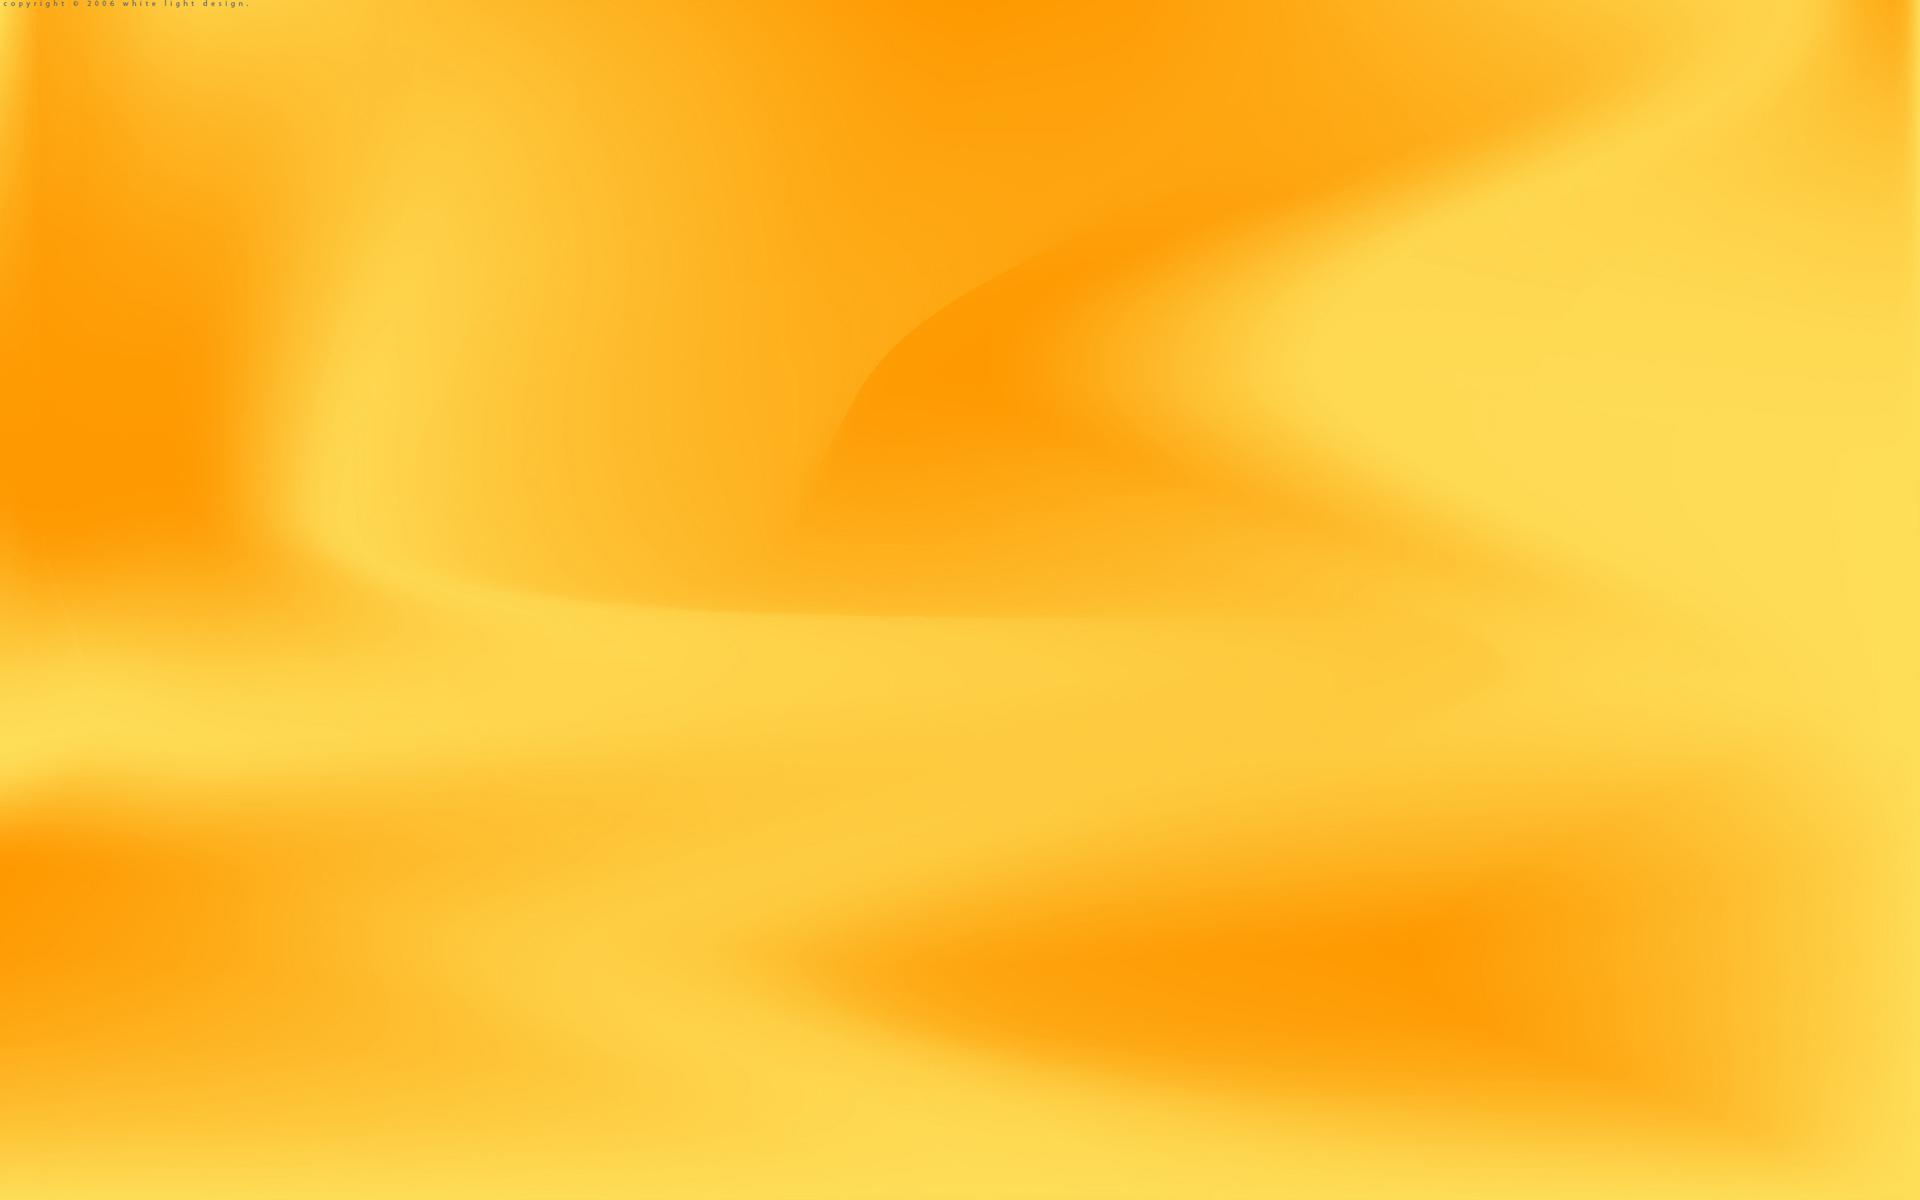 Yellow desktop backgrounds wallpaper cave yellow abstract wallpapers full hd wallpaper search page 4 thecheapjerseys Images